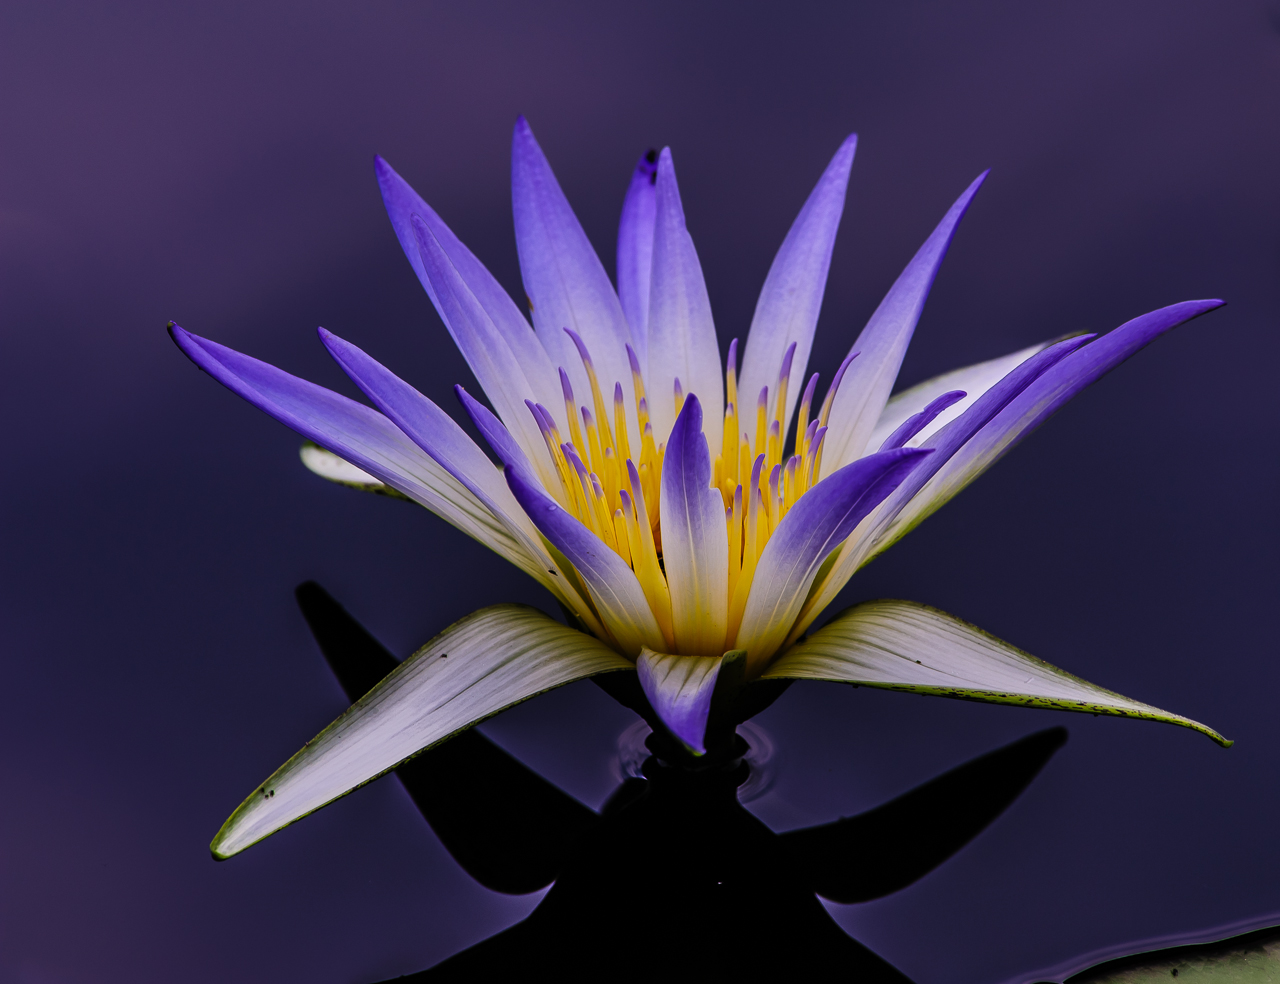 Blue Lotus Flower Meaning